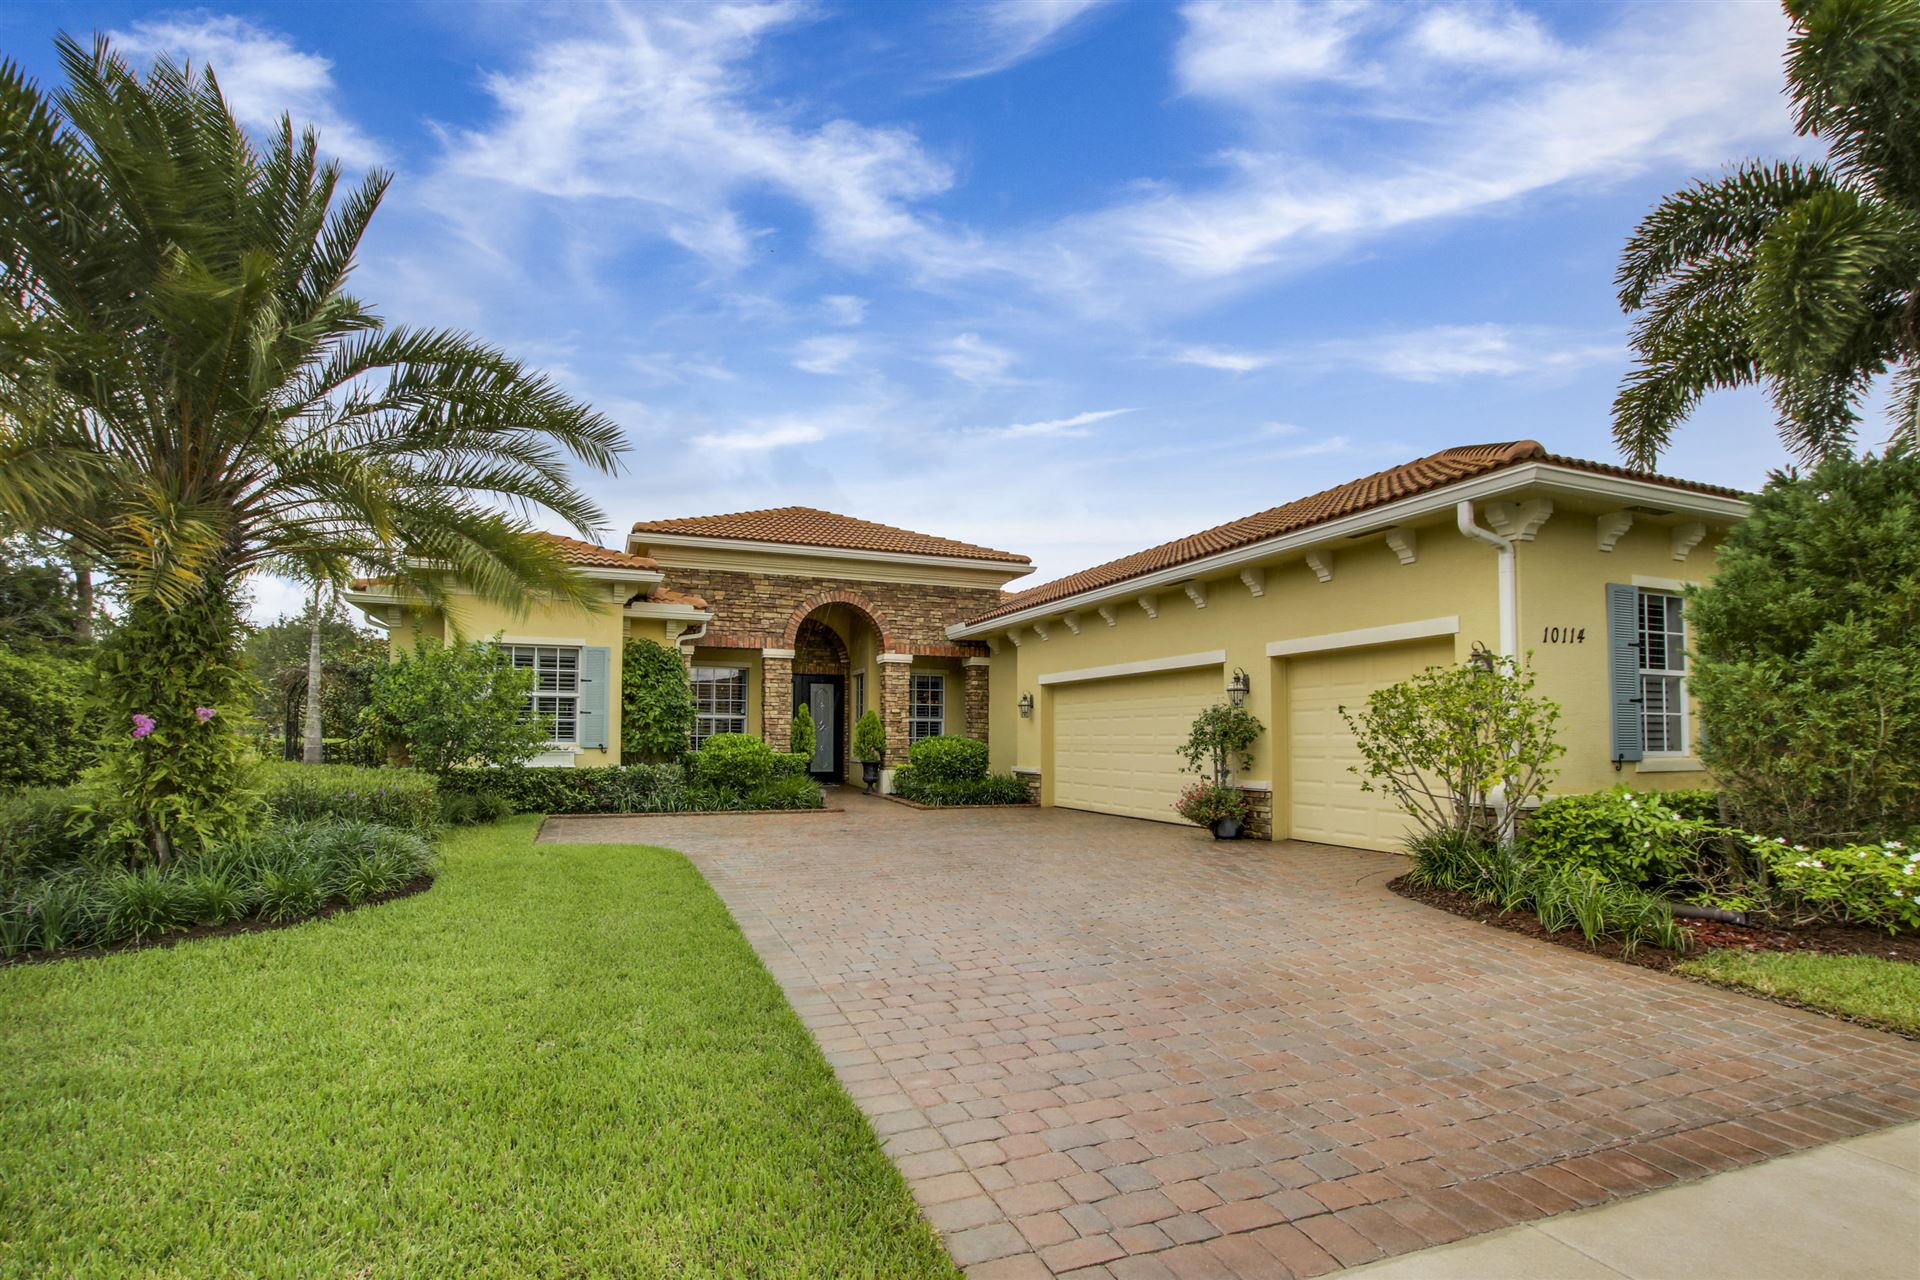 10114 SW Nuova Way, Port Saint Lucie, FL 34986 - #: RX-10648456